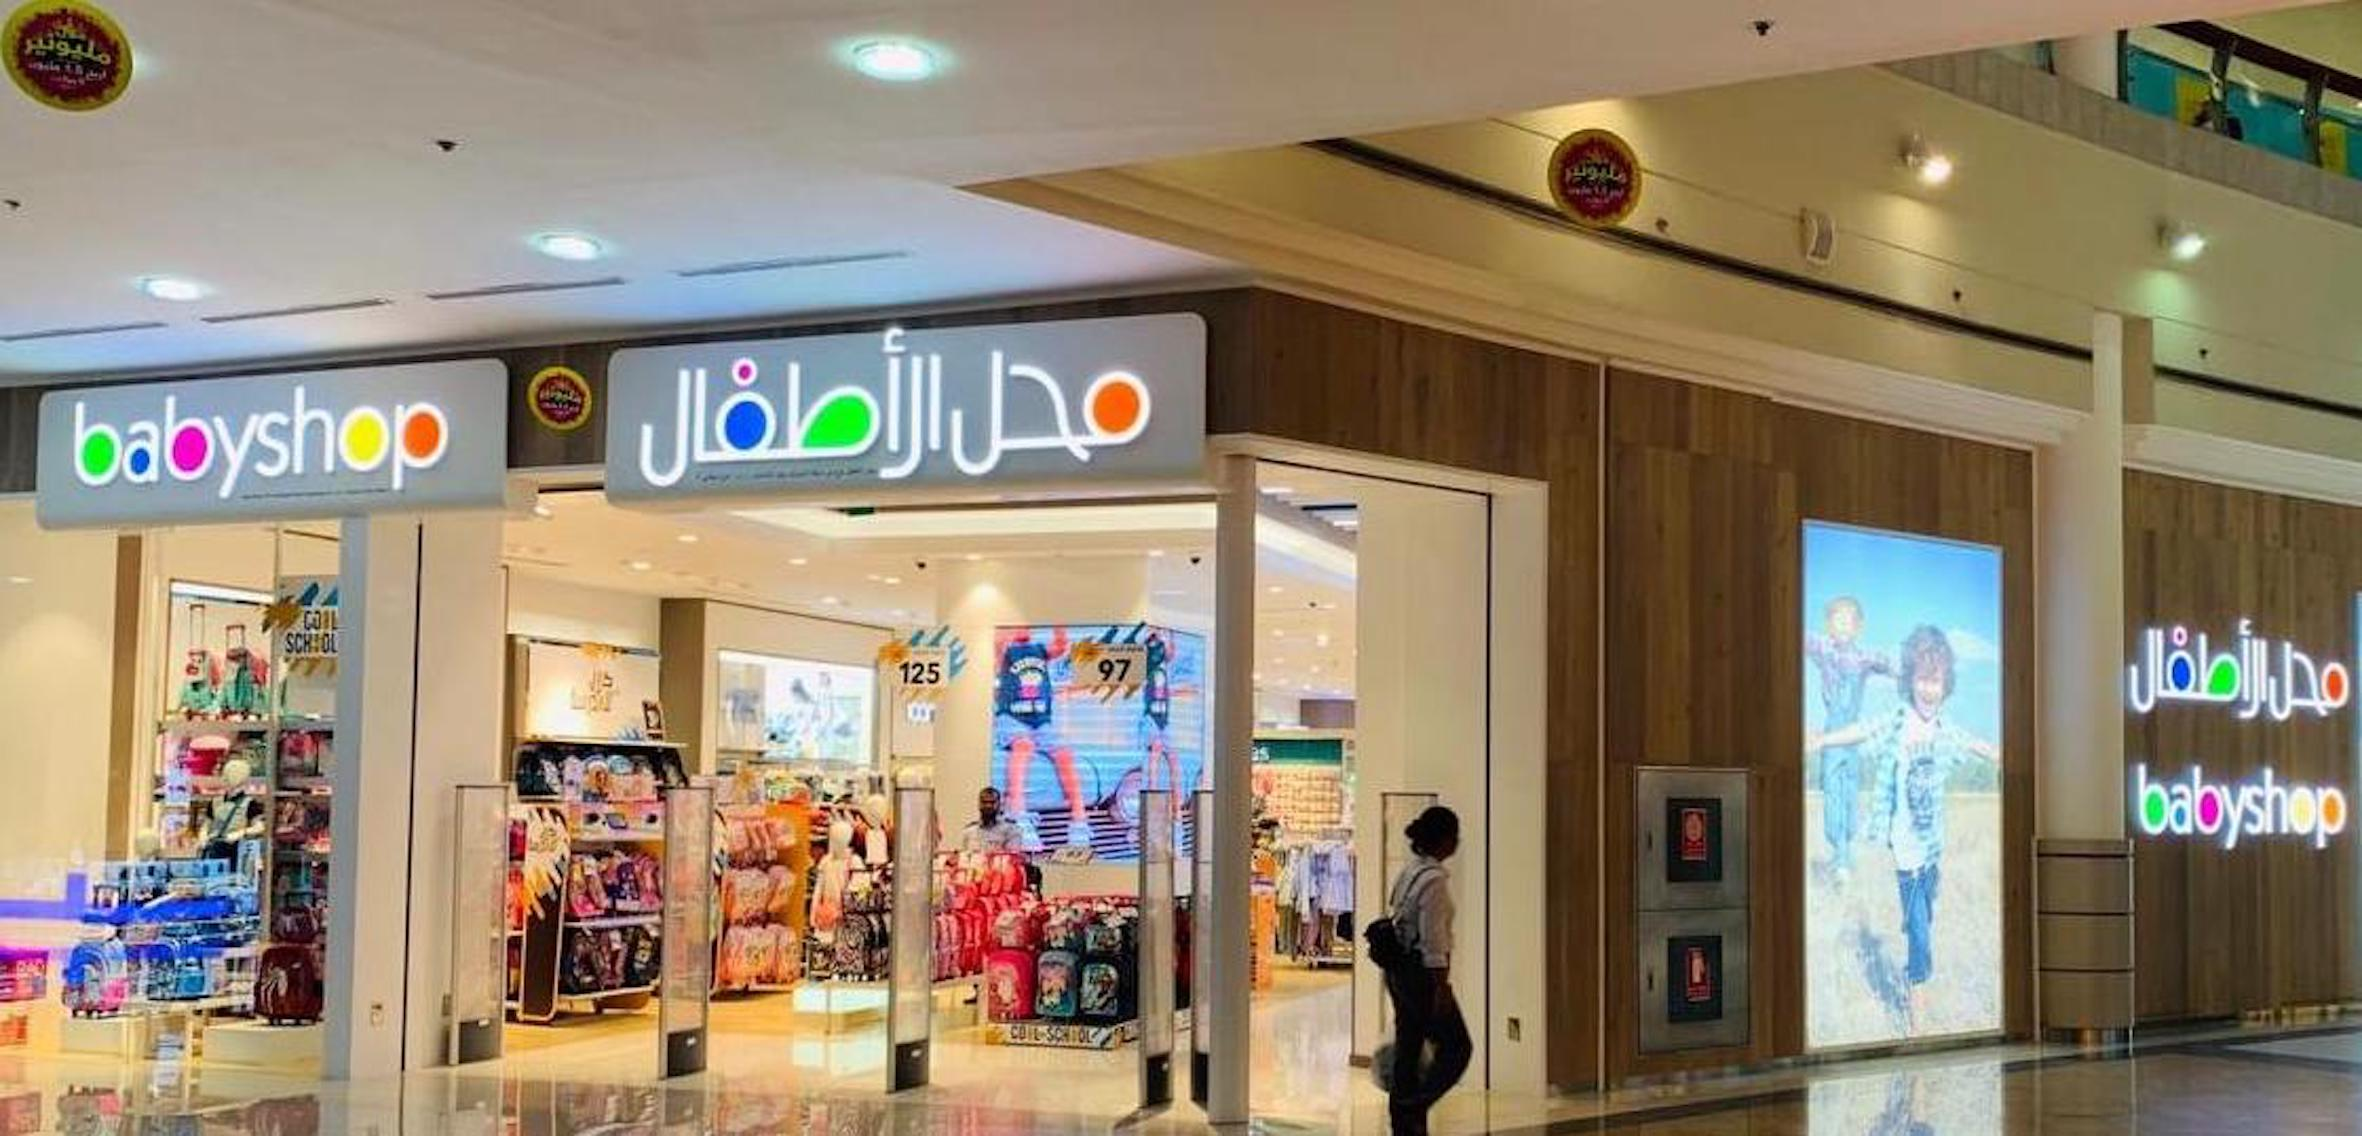 Babyshop now open in Al Wahda Mall - Future of retail business in